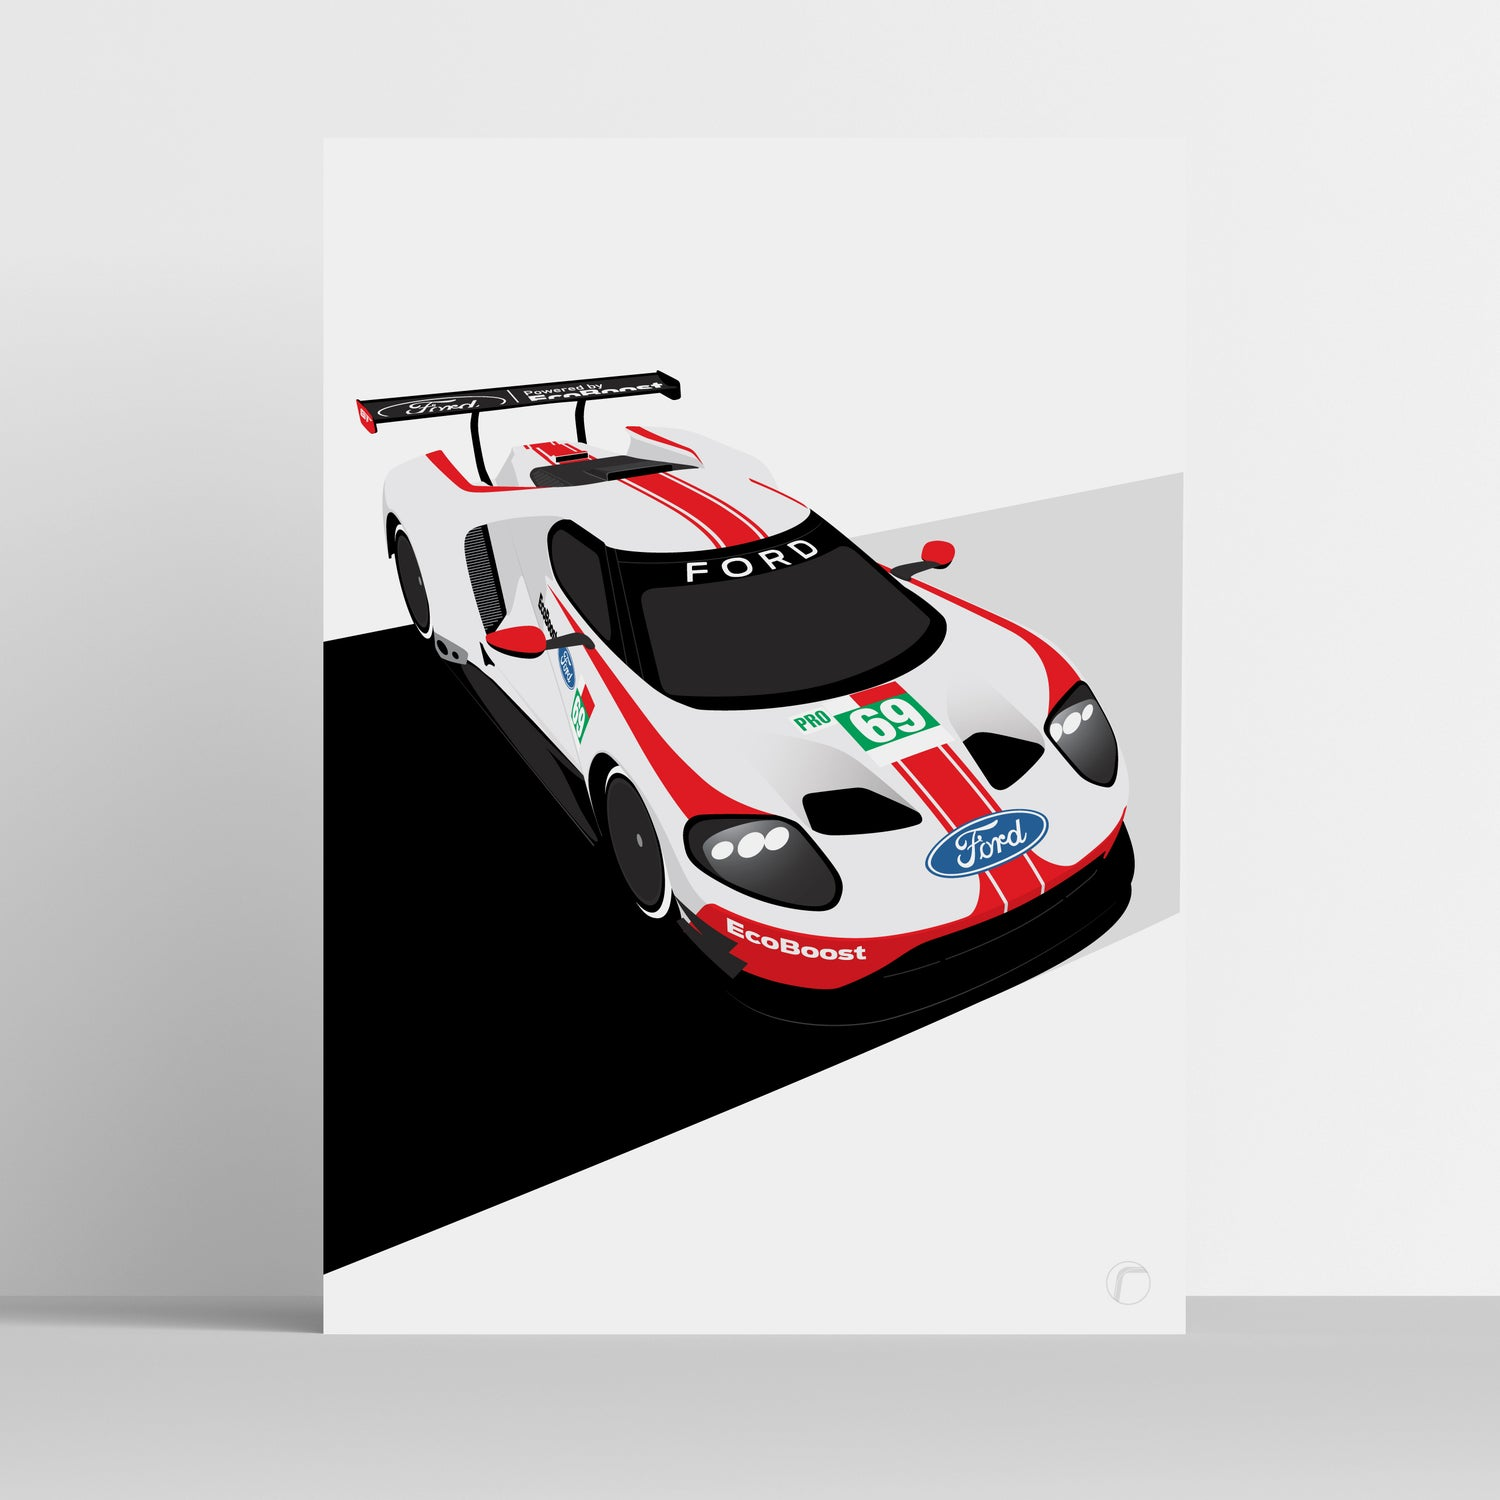 Image of Ford GT40 | Le Mans #69 2019